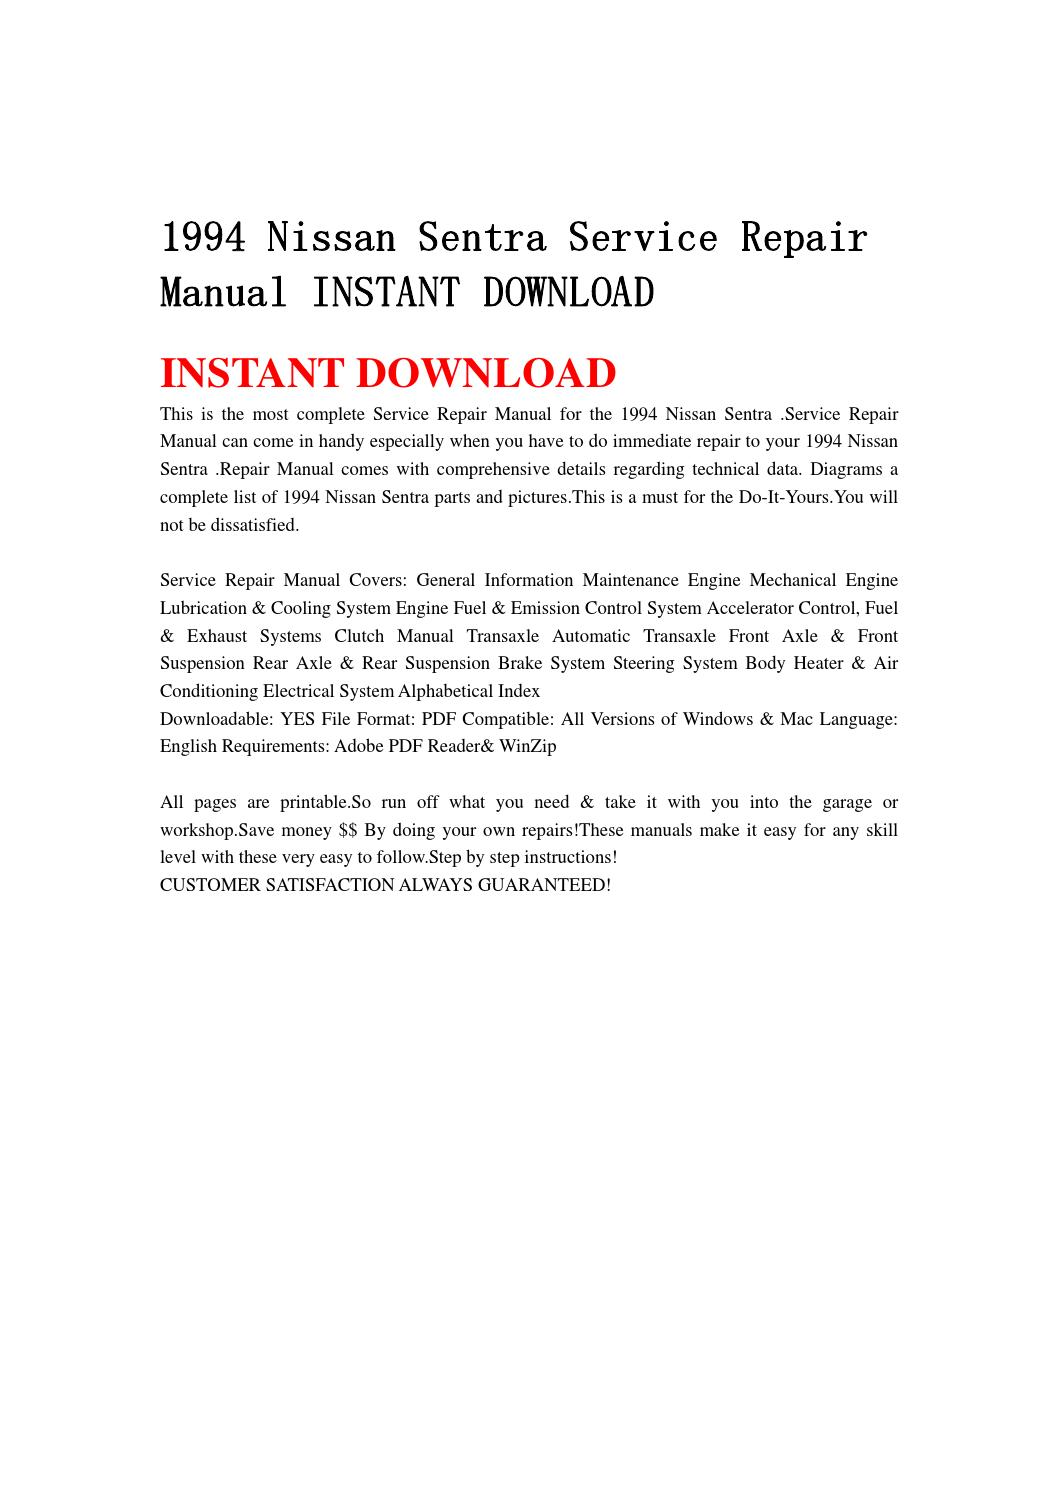 1994 nissan sentra engine diagram how to read avionics wiring diagrams service repair manual instant download